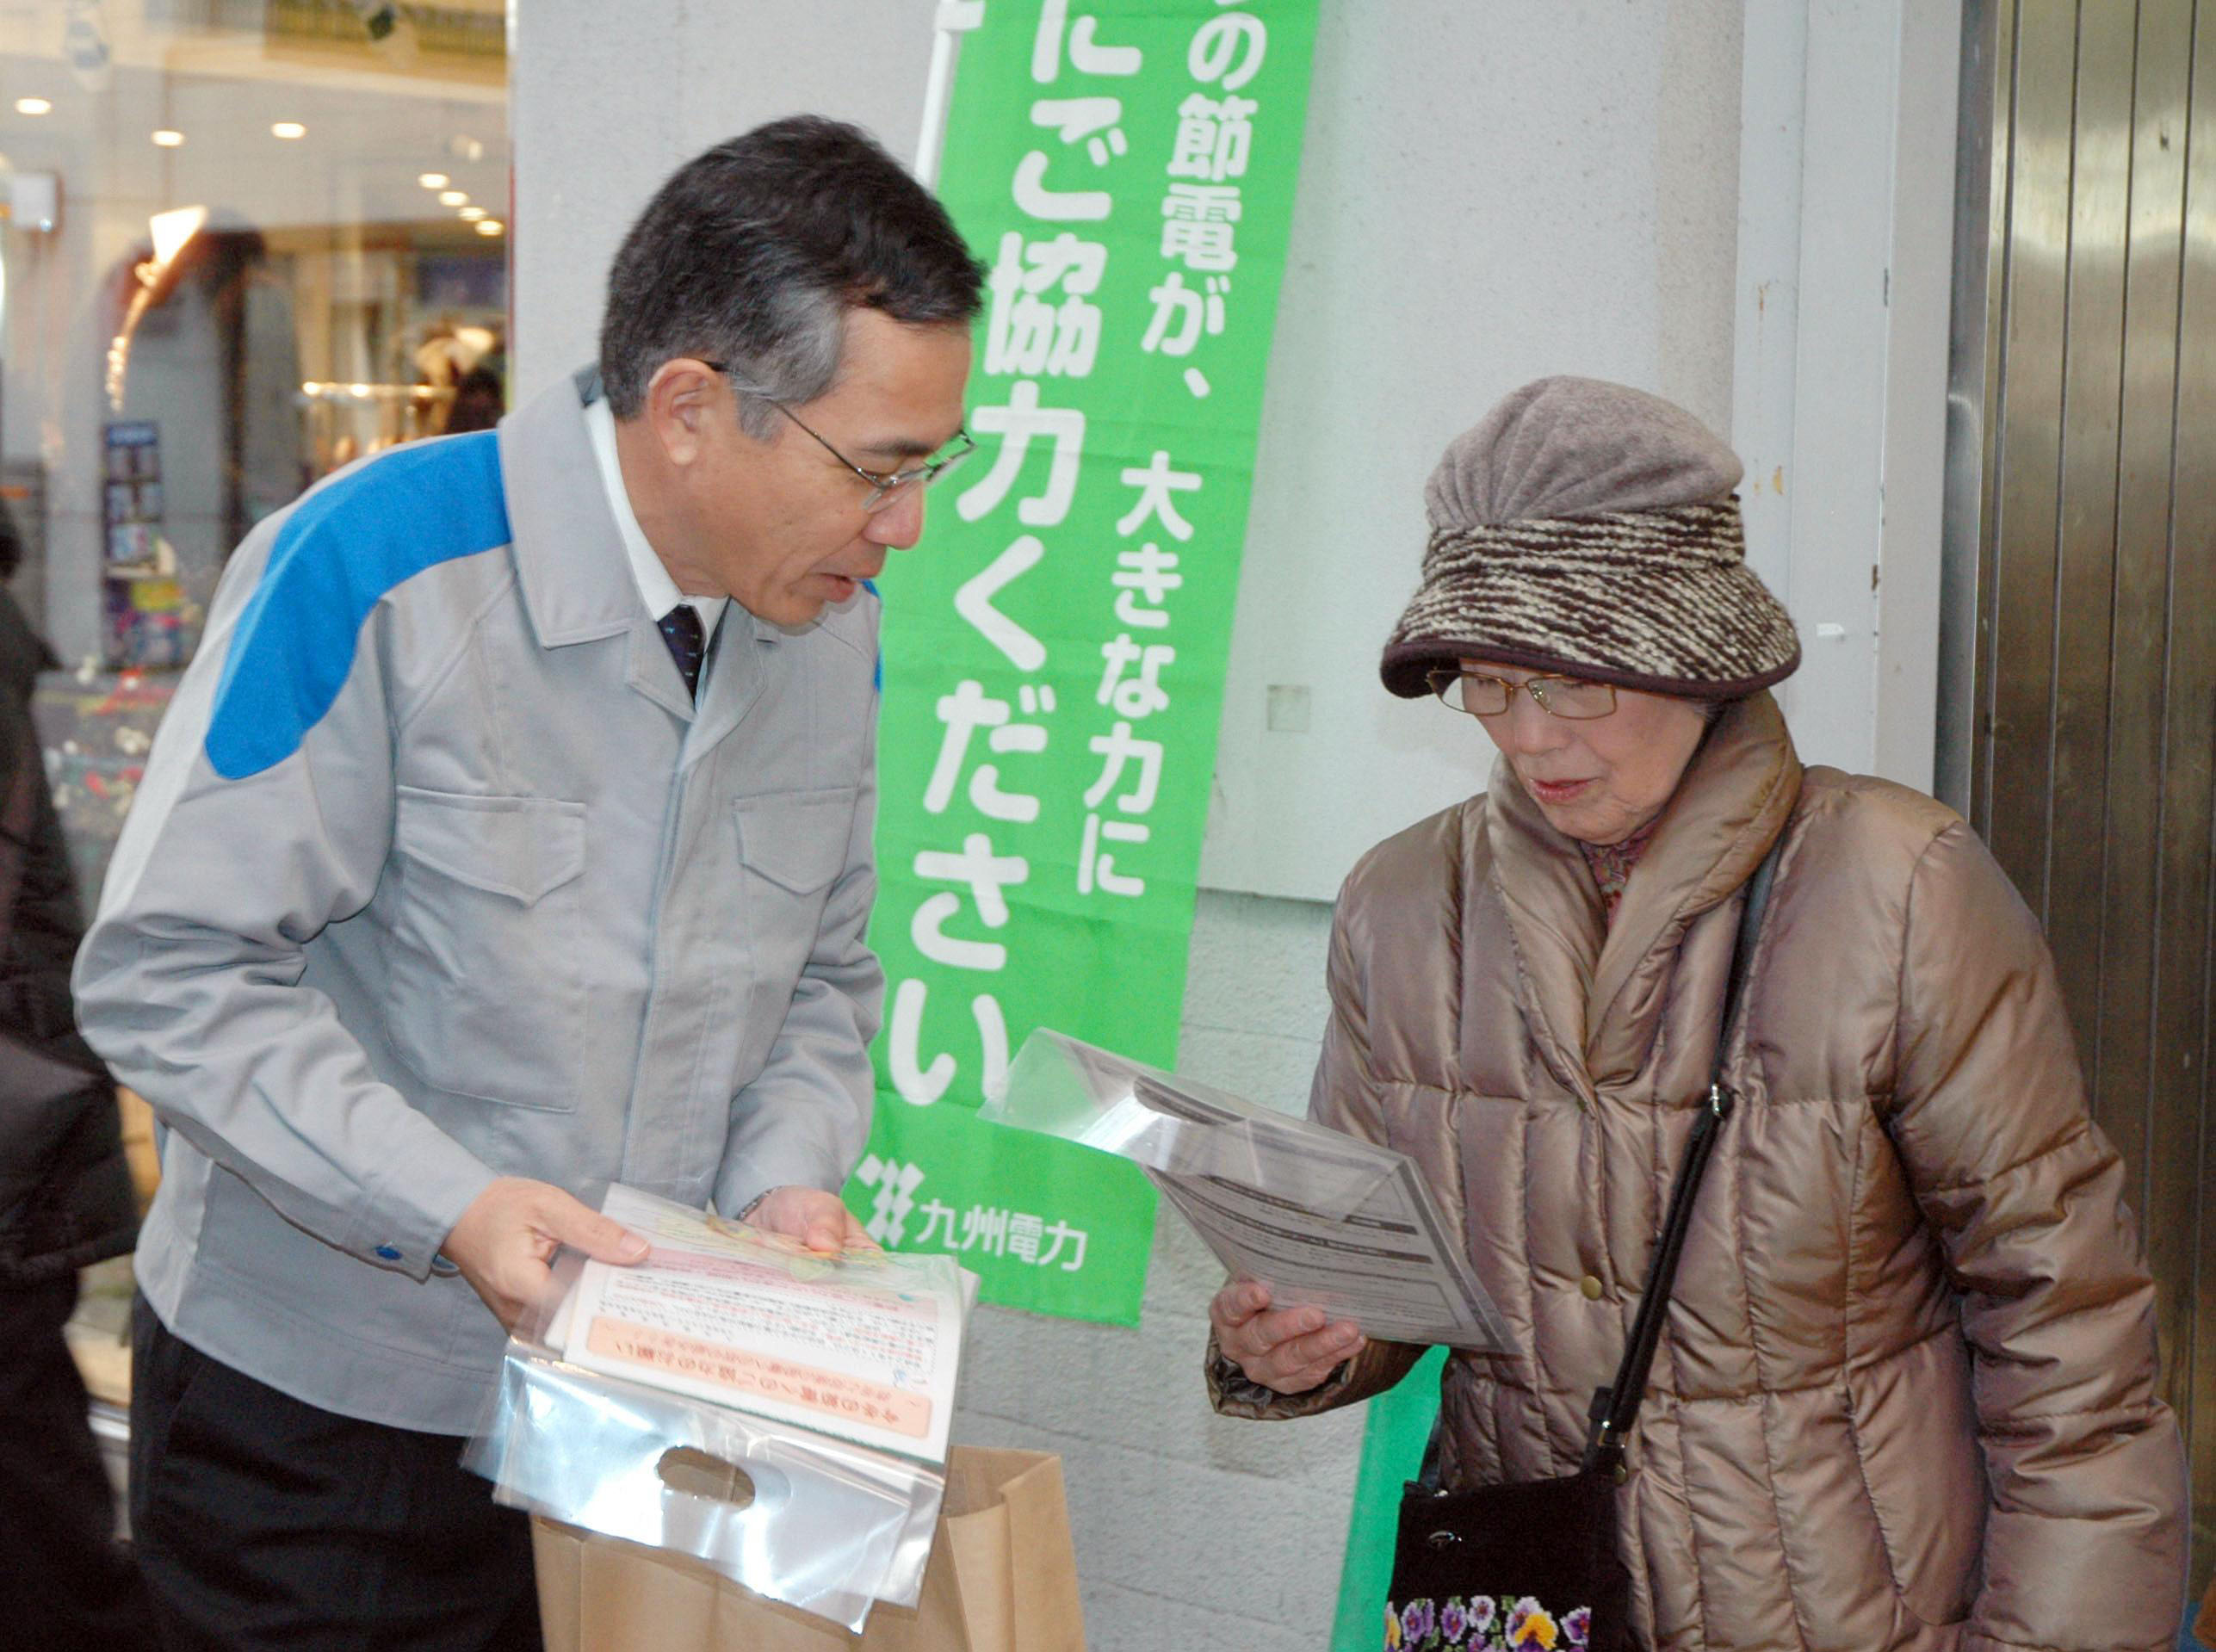 Appeal: An employee of Kyushu Electric Power Co. hands out leaflets asking people to save energy in Fukuoka on Monday. | KYODO